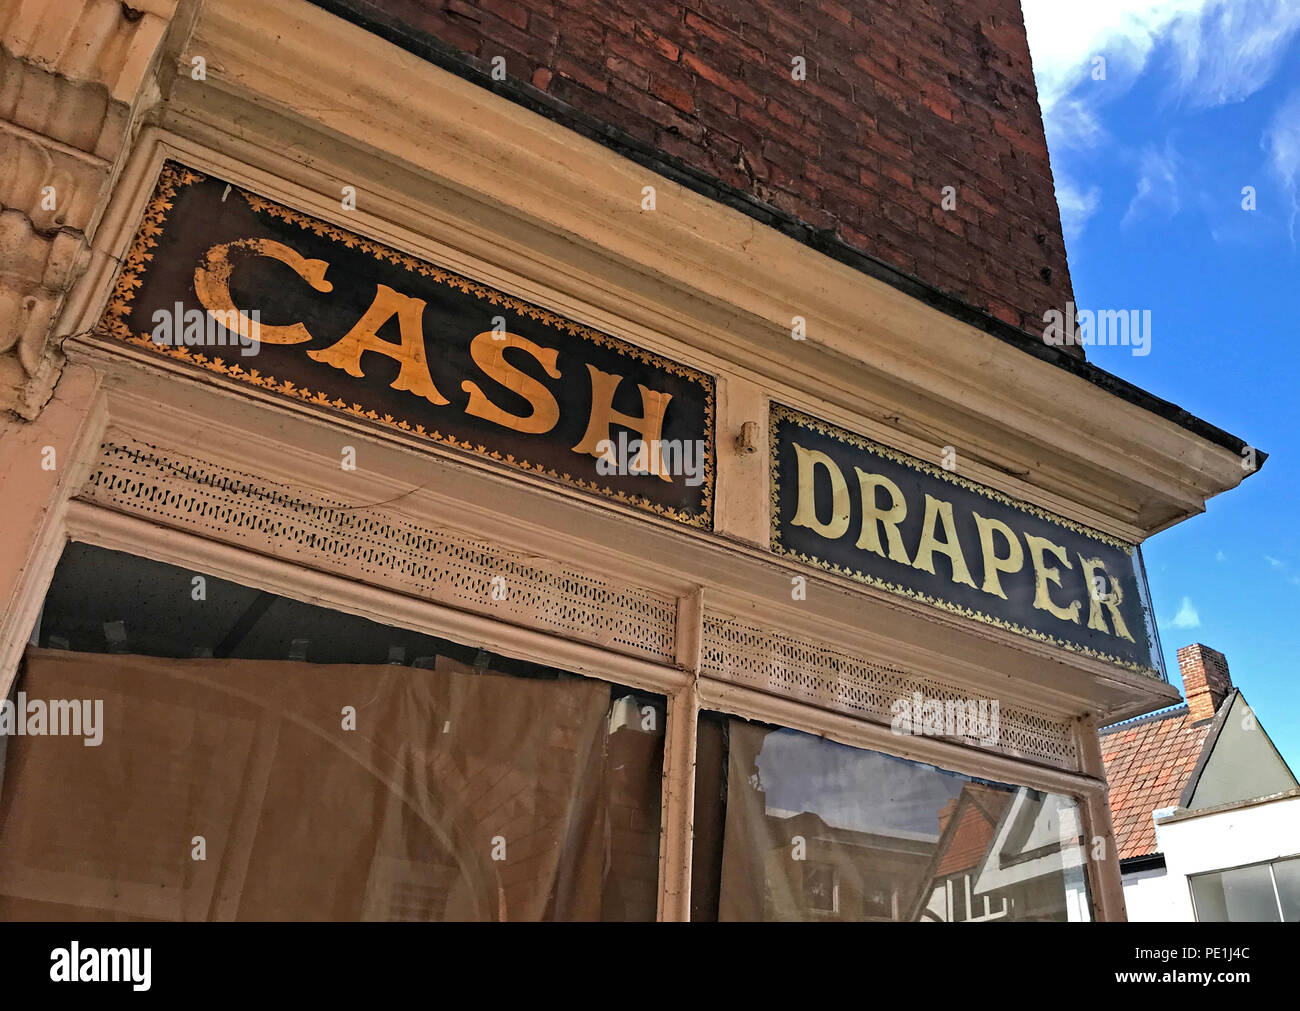 Victorian Cash Draper shop sign, glass and gold leaf, high street, Bridgwater,Somerset, South West England, UK - Stock Image